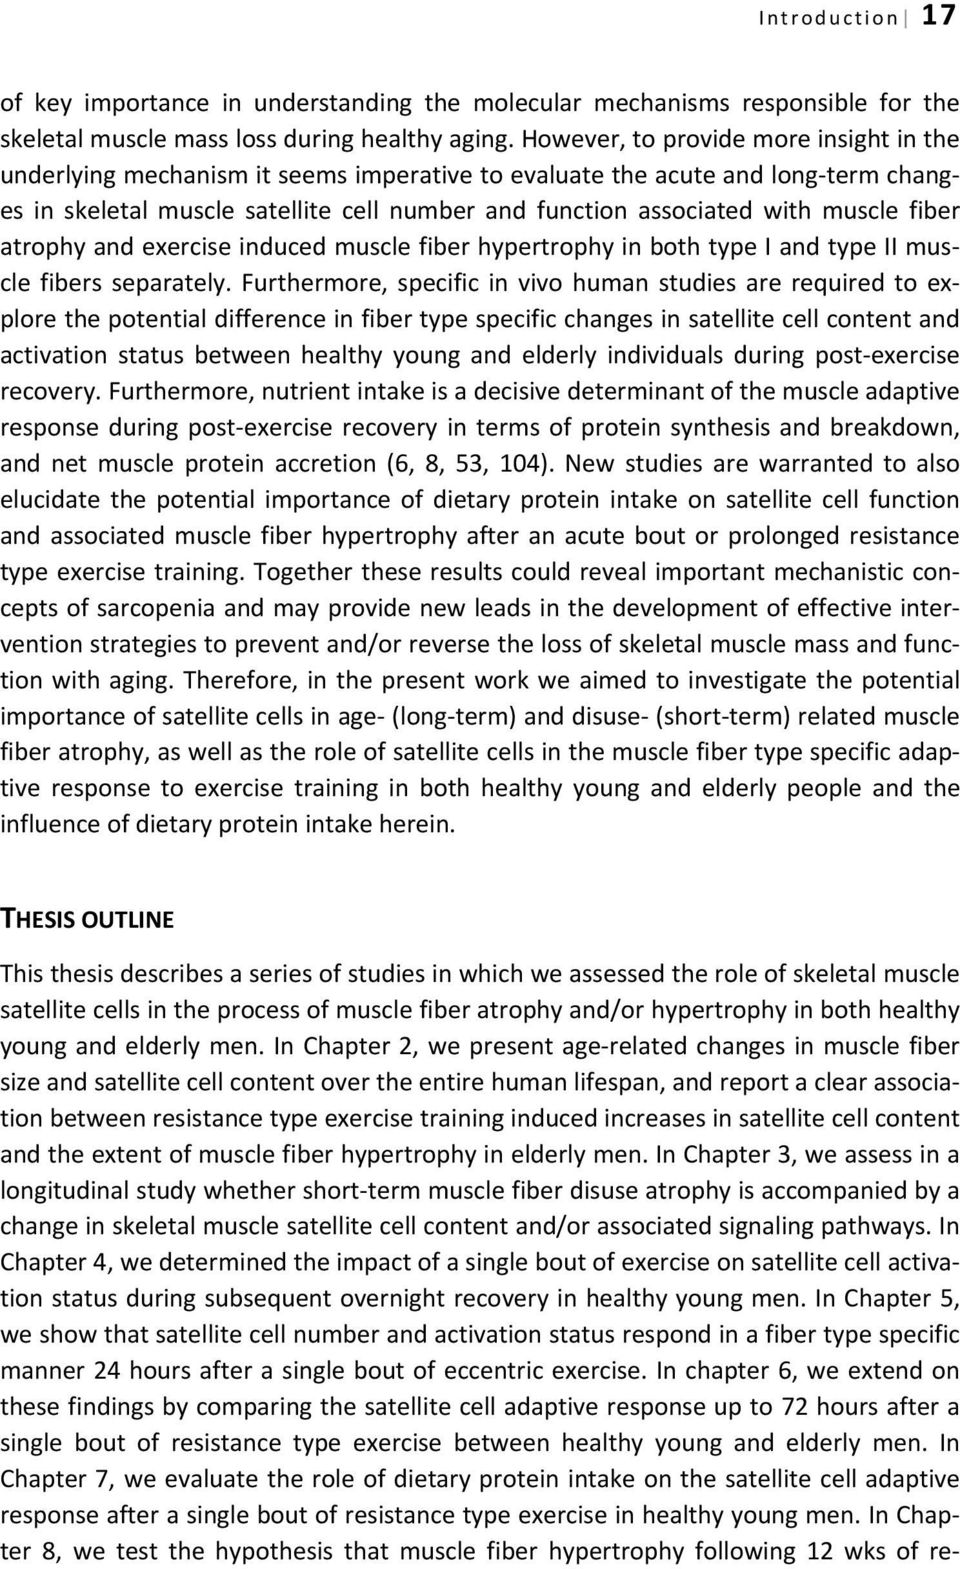 muscle fiber atrophy and exercise induced muscle fiber hypertrophy in both type I and type II muscle fibers separately.